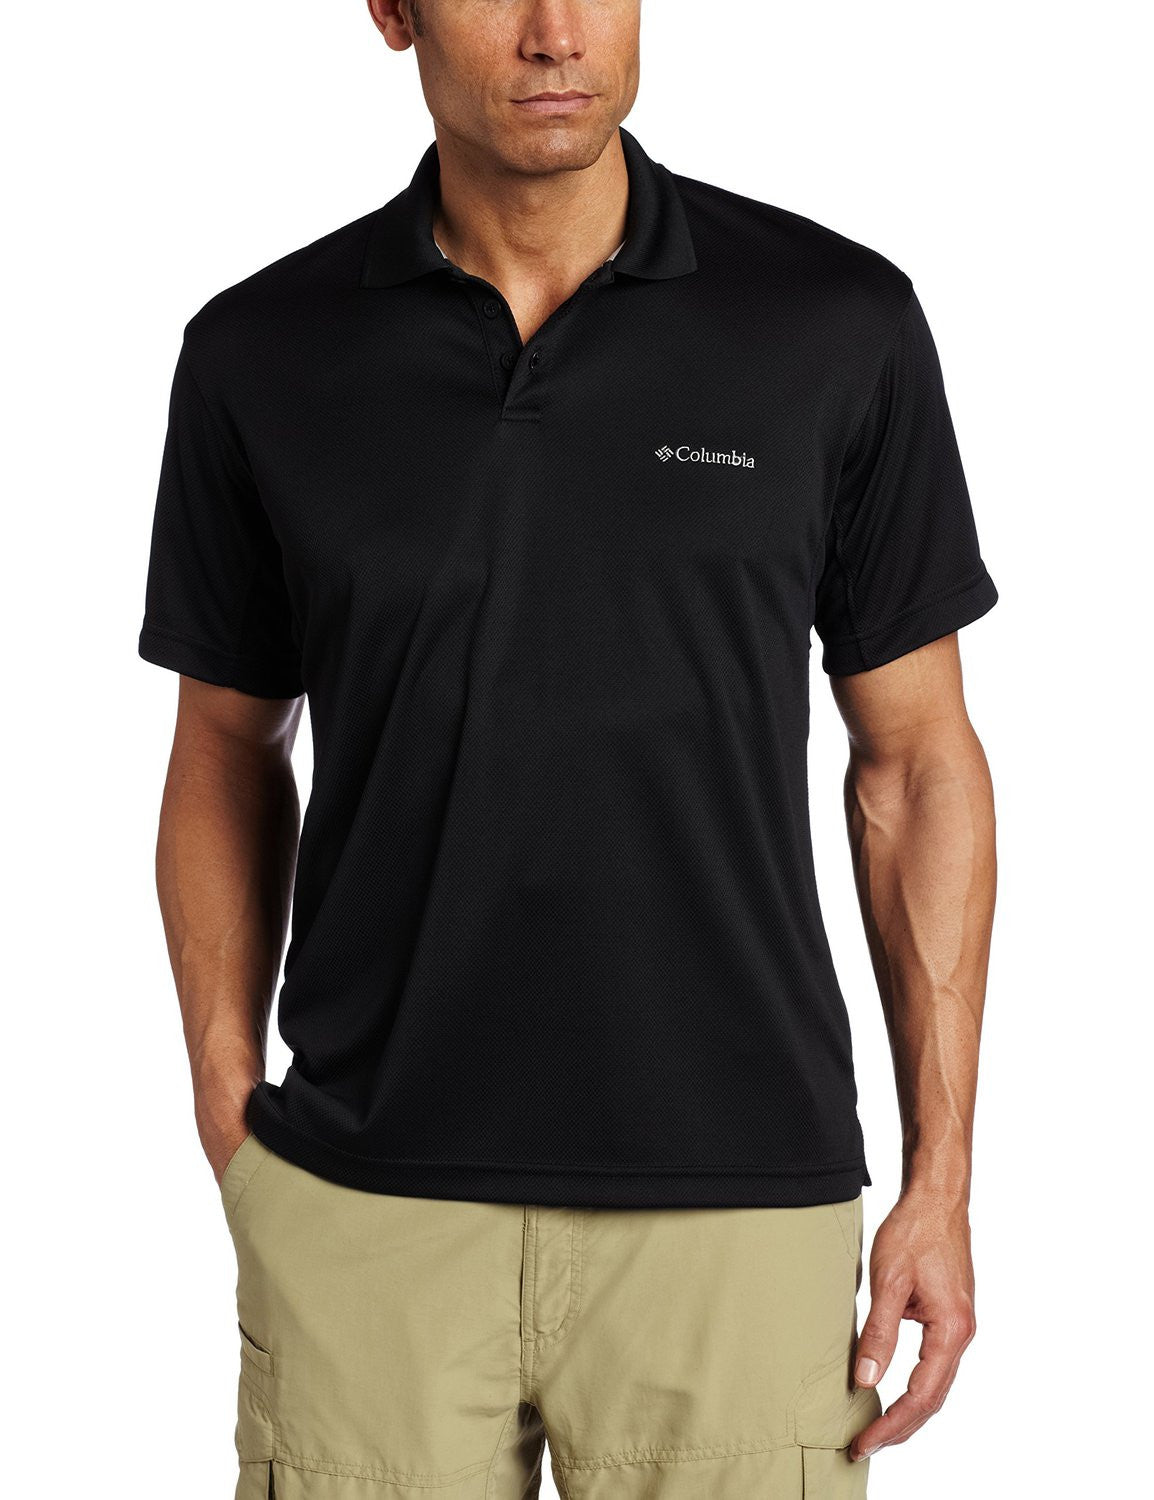 1d266a1f37e Columbia Men's New Utilizer Polo Shirt - Shoplifestyle